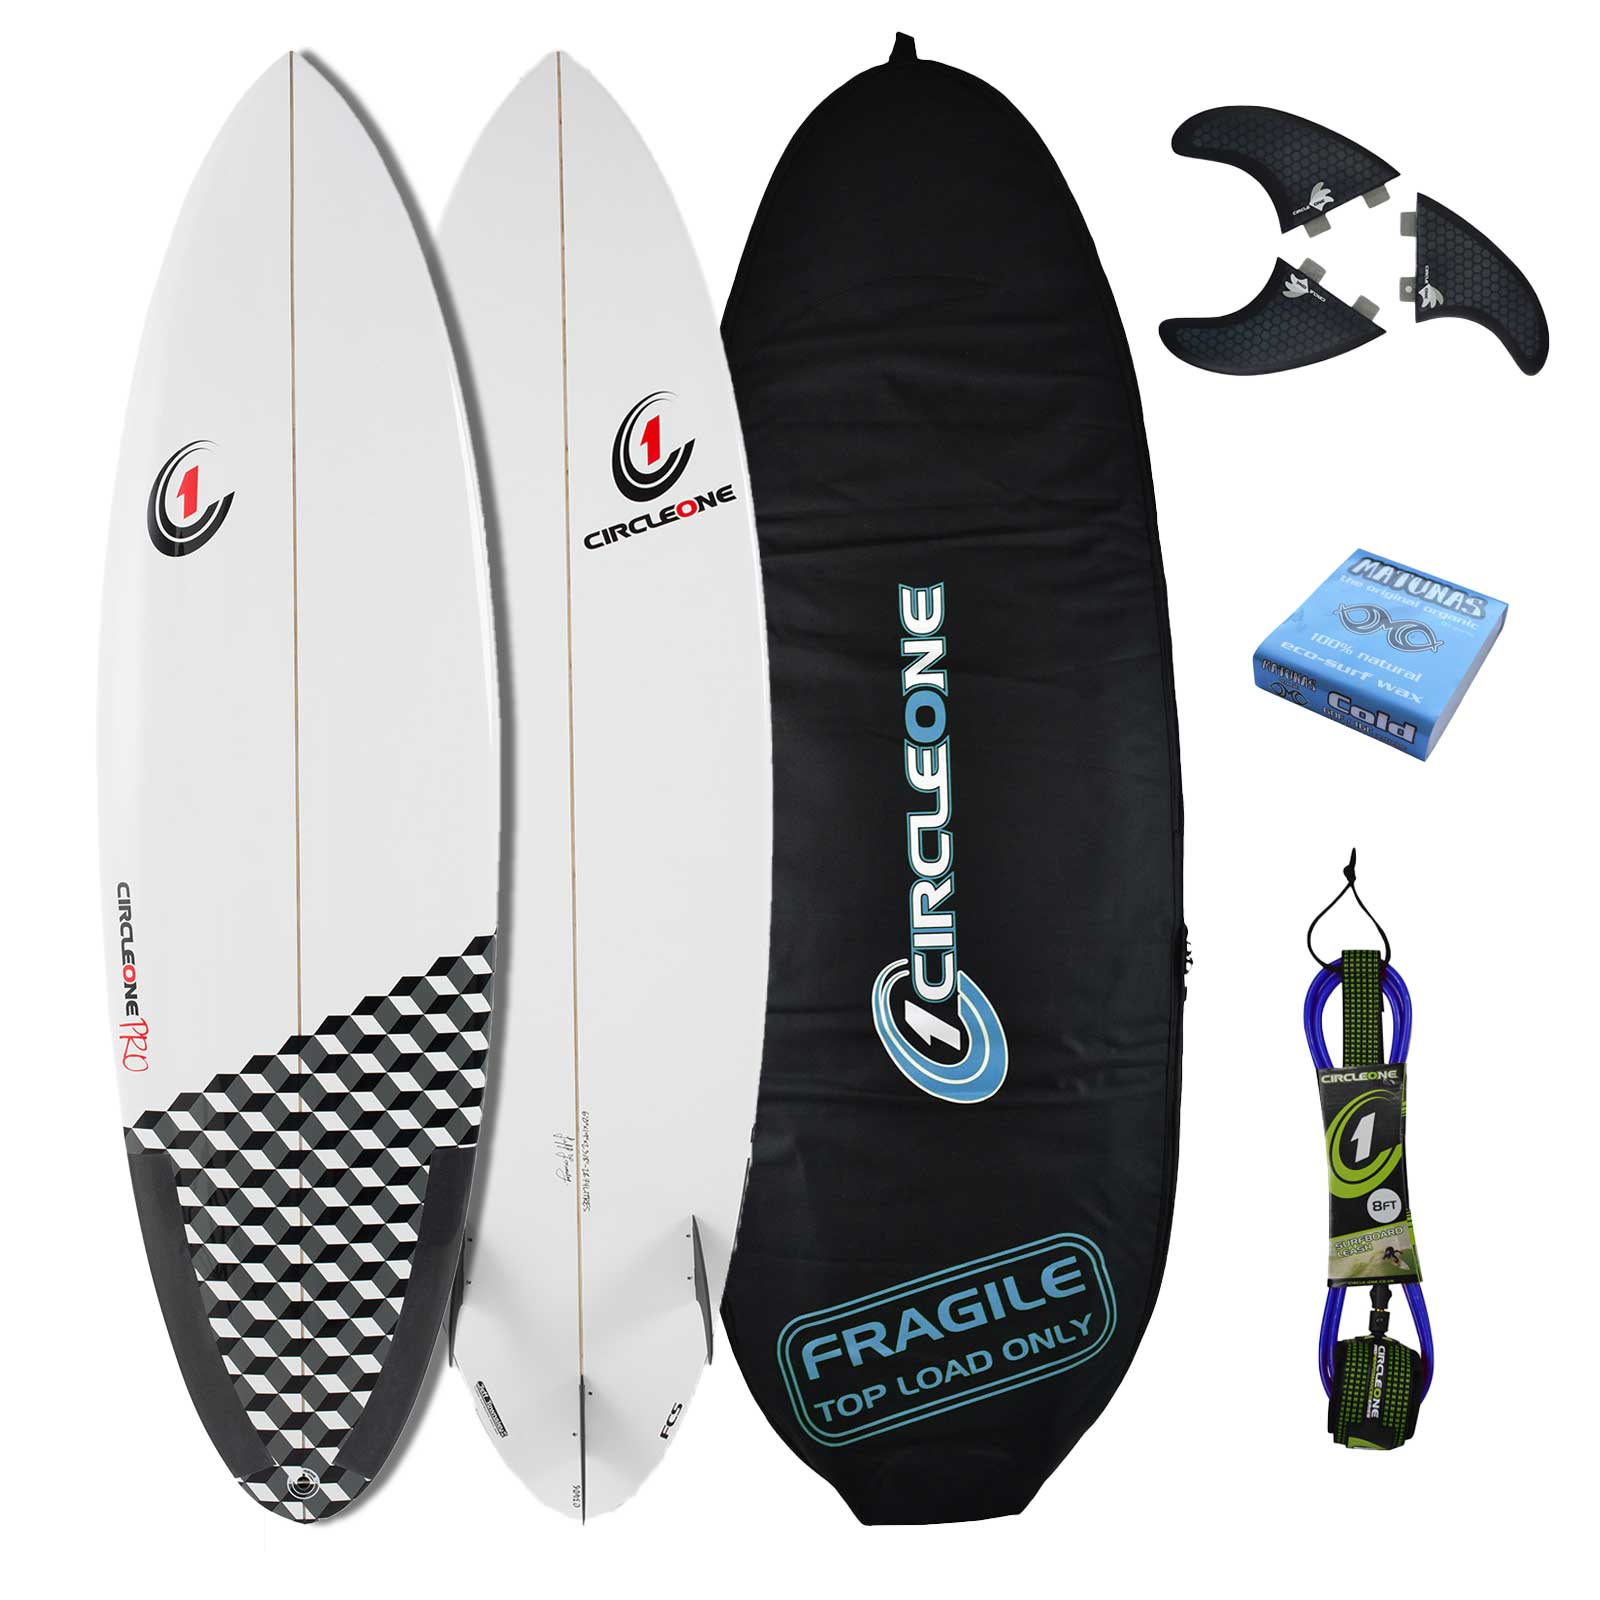 6ft Pro Carbon Surfboard Round Tail Shortboard Package Includes Bag Leash Fins Wax